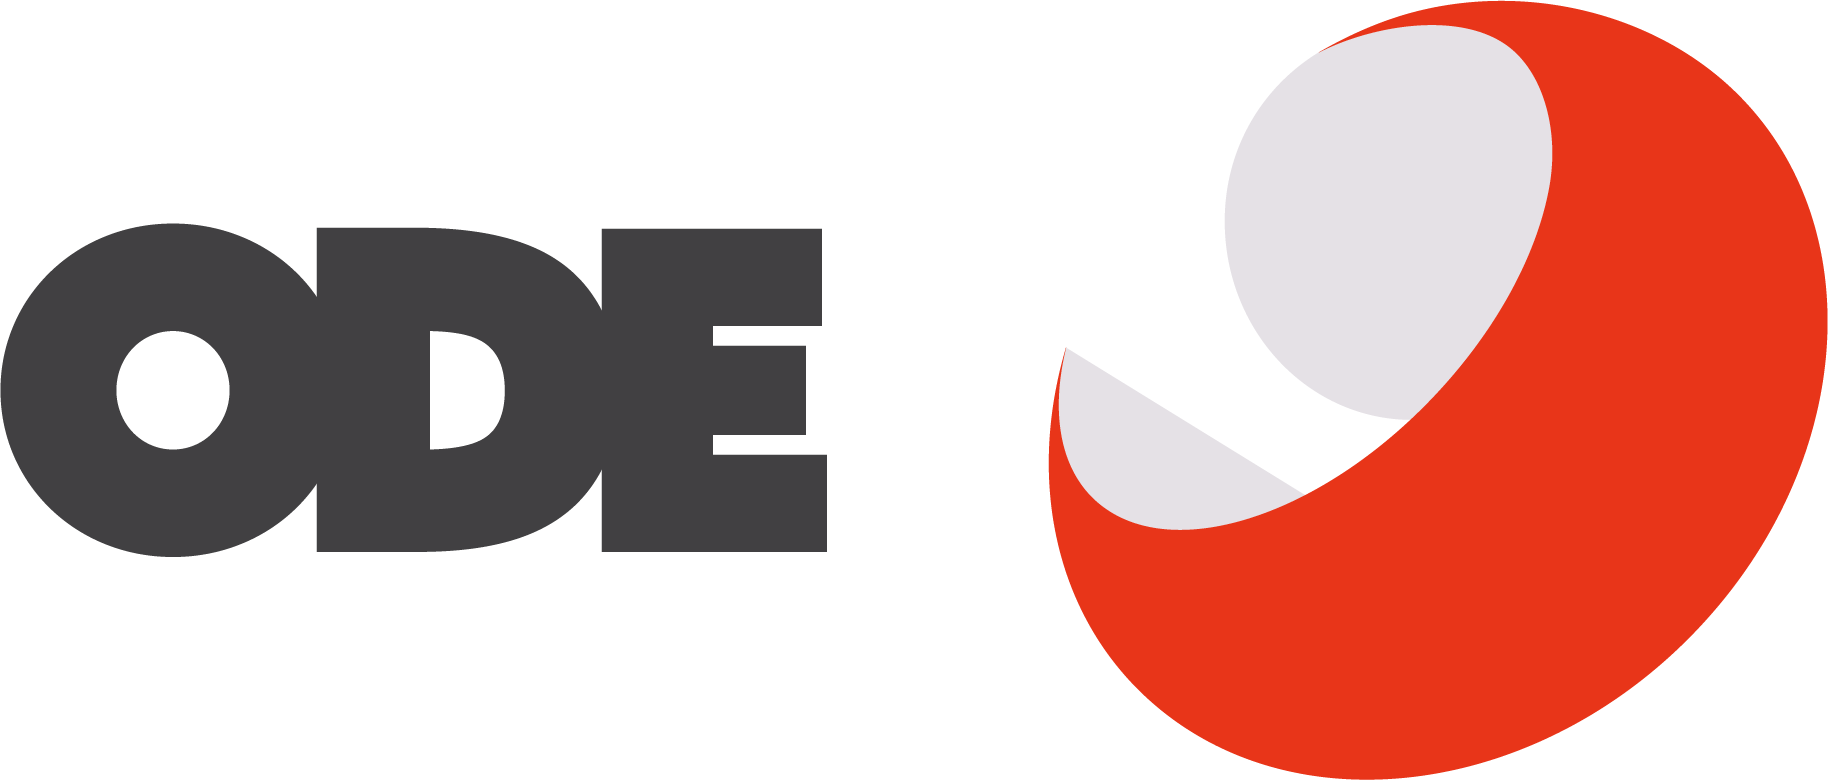 Ode logo row red